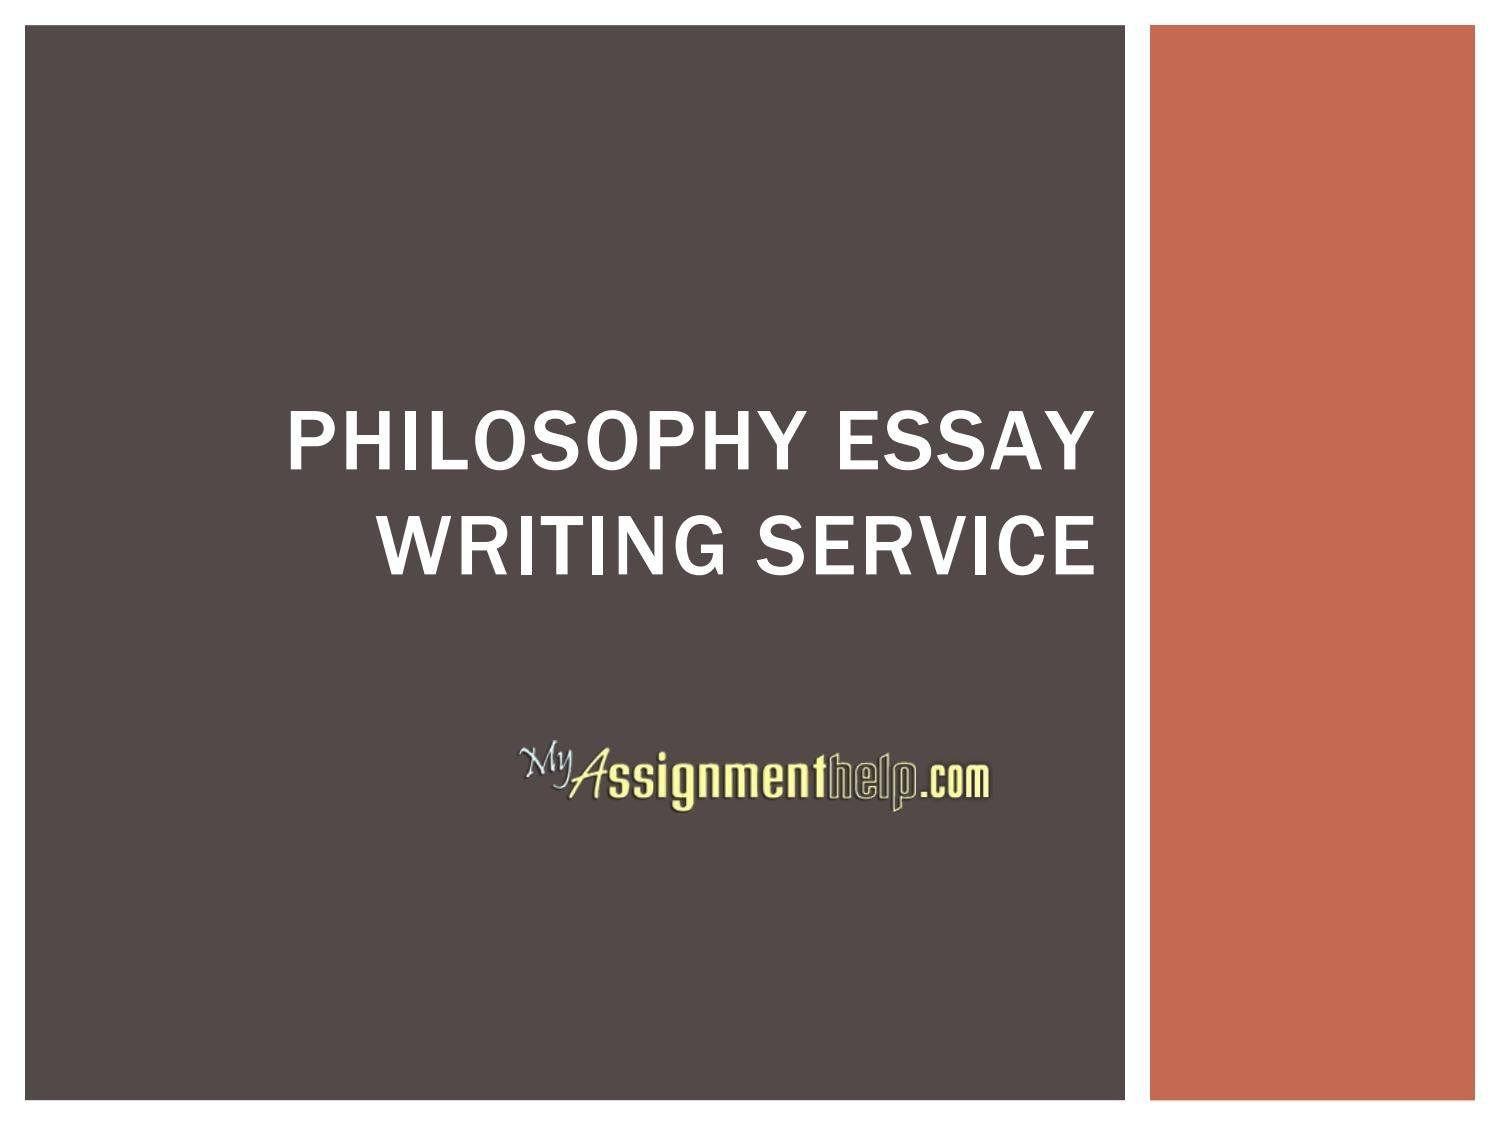 philosophy essay writing service by myassignmenthelp com issuu